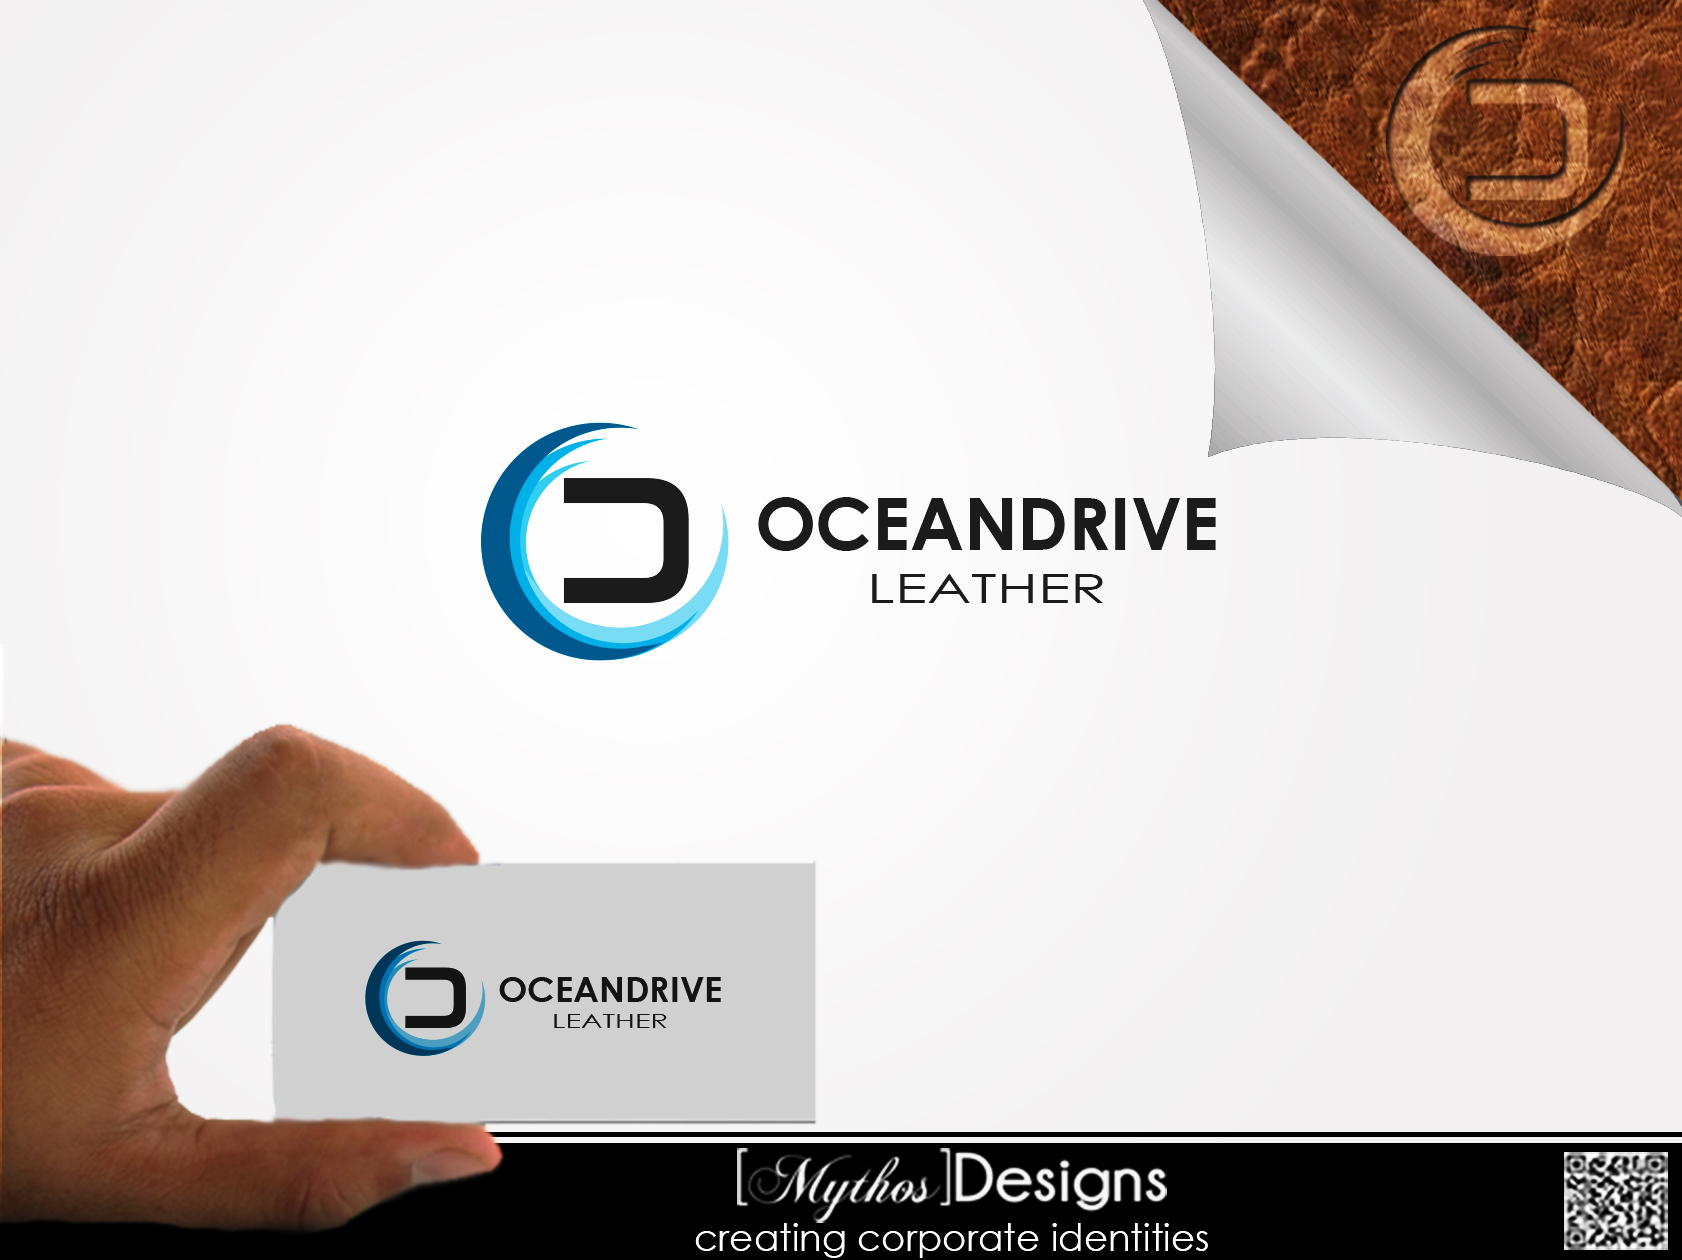 Logo Design by Mythos Designs - Entry No. 8 in the Logo Design Contest Captivating Logo Design for Oceandrive Leather.